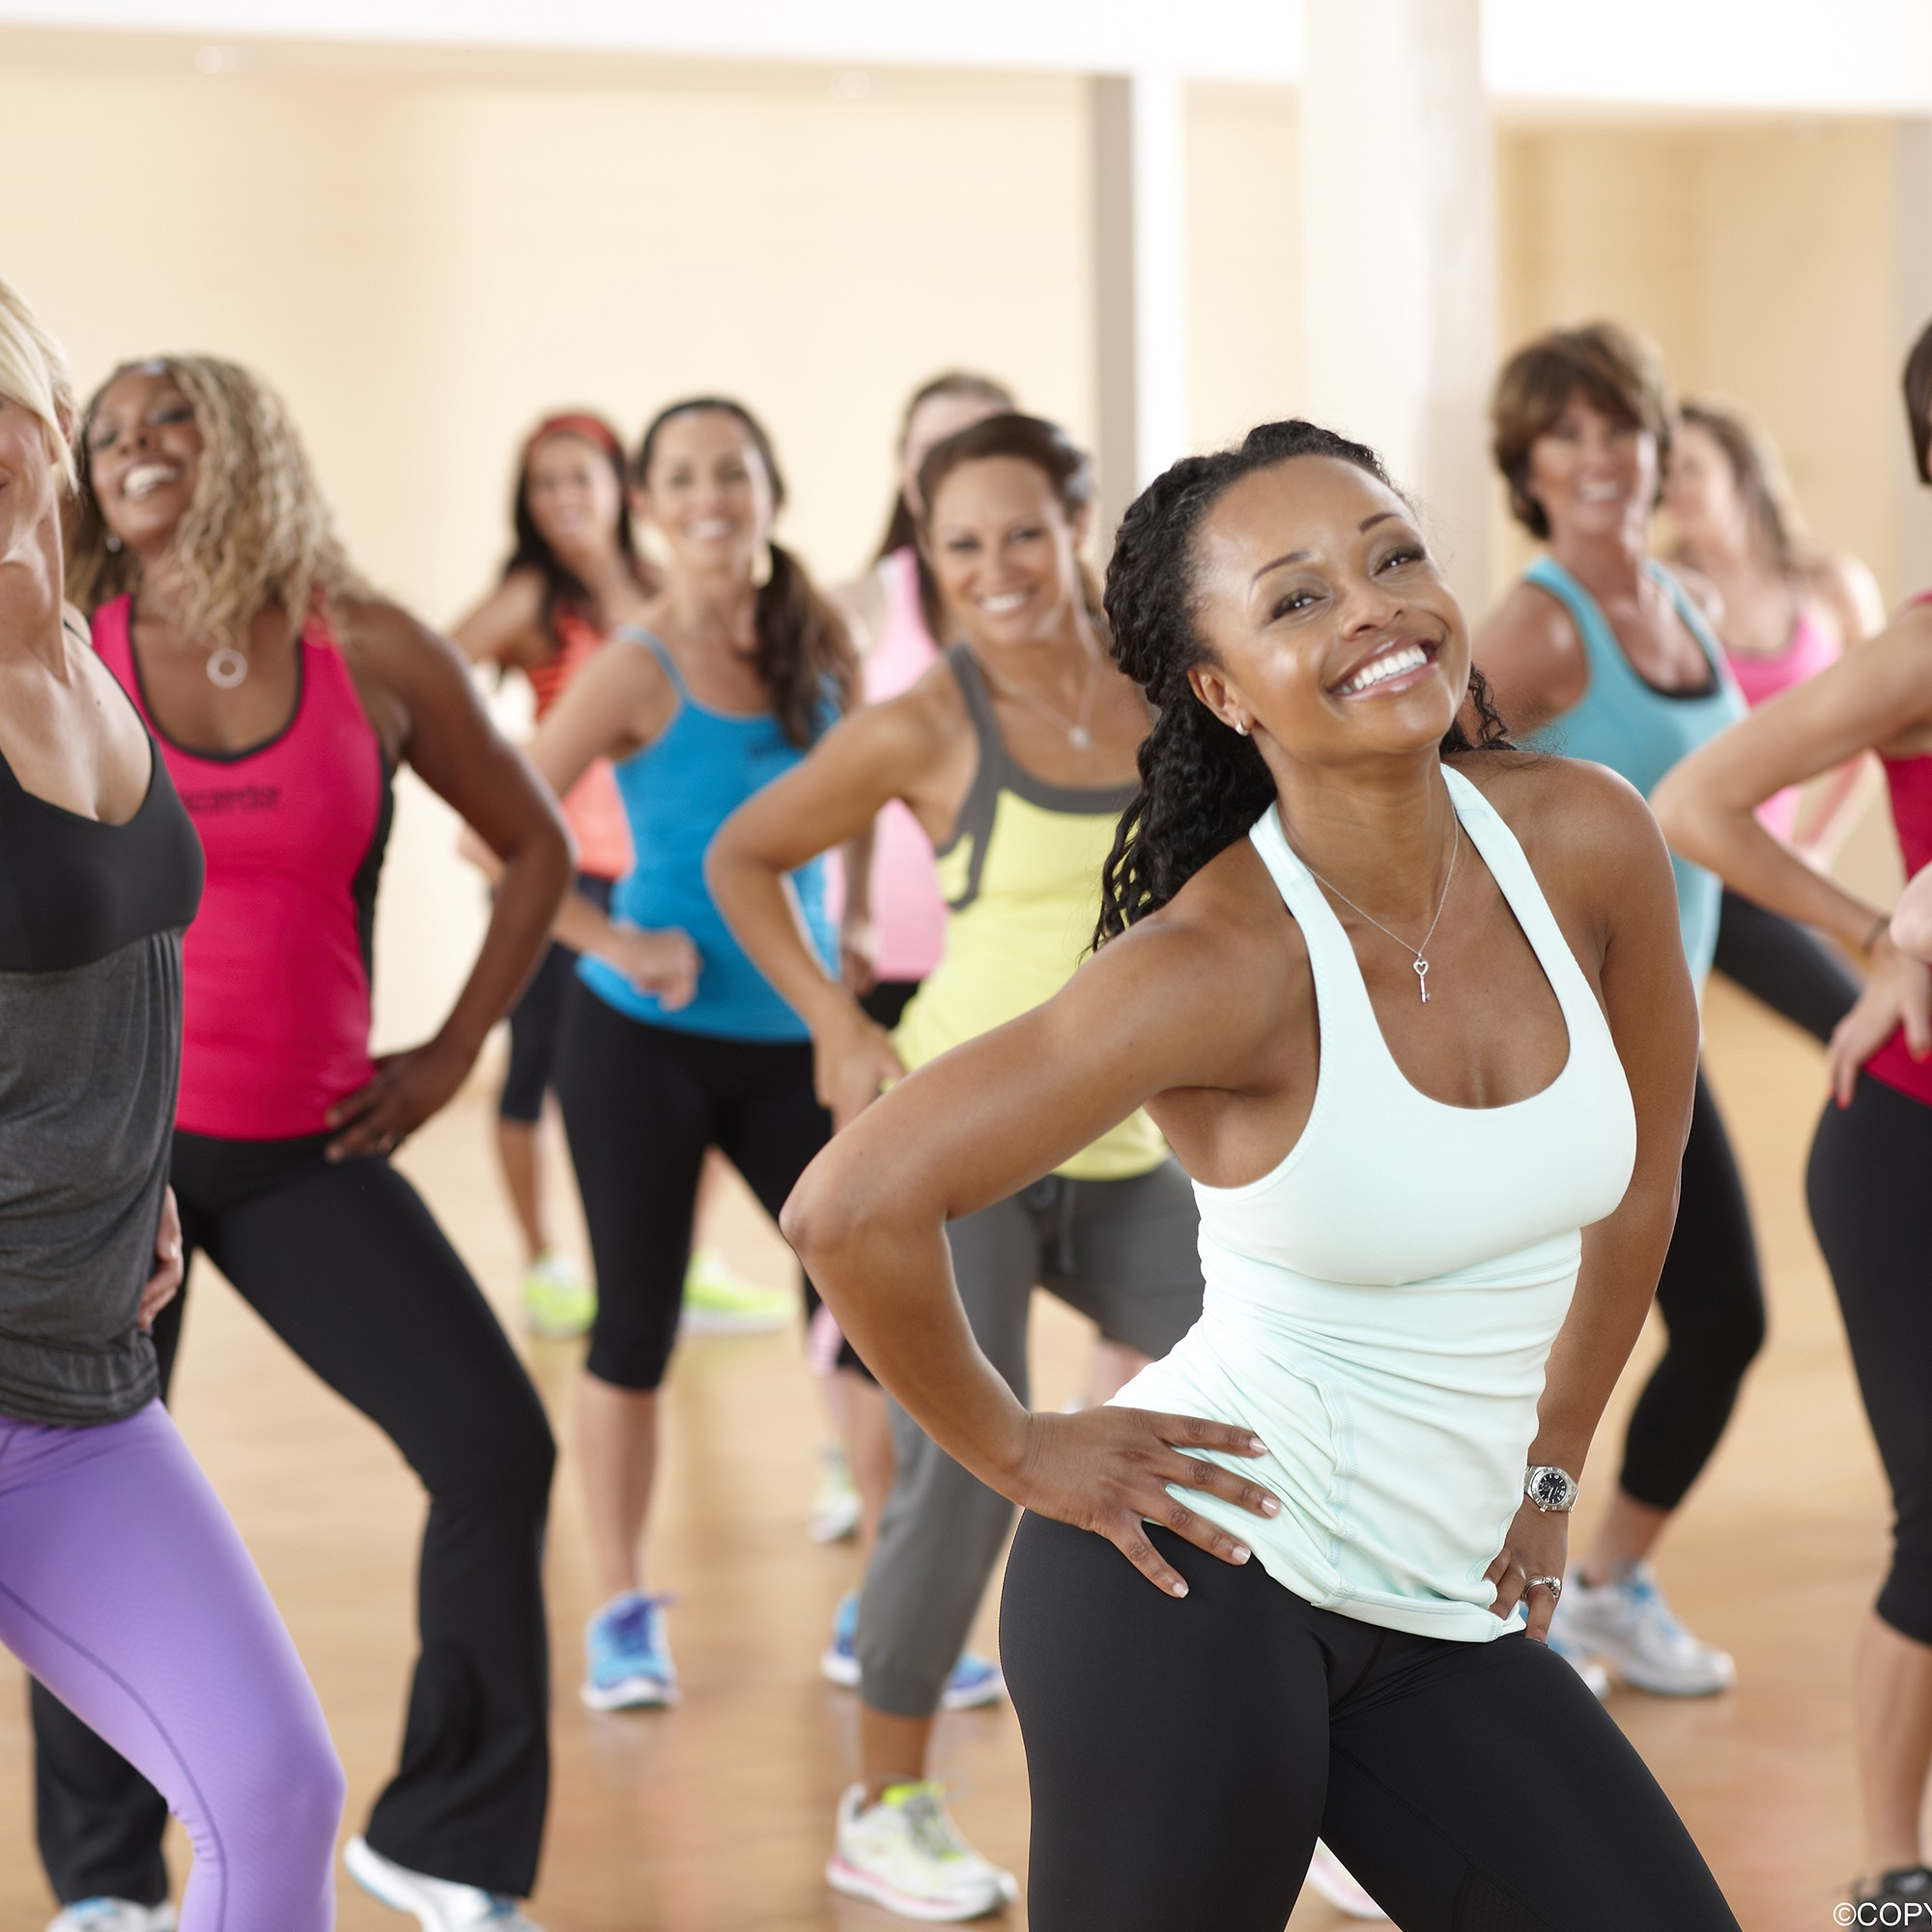 Zumba - A Fast & fun workout in the UAE